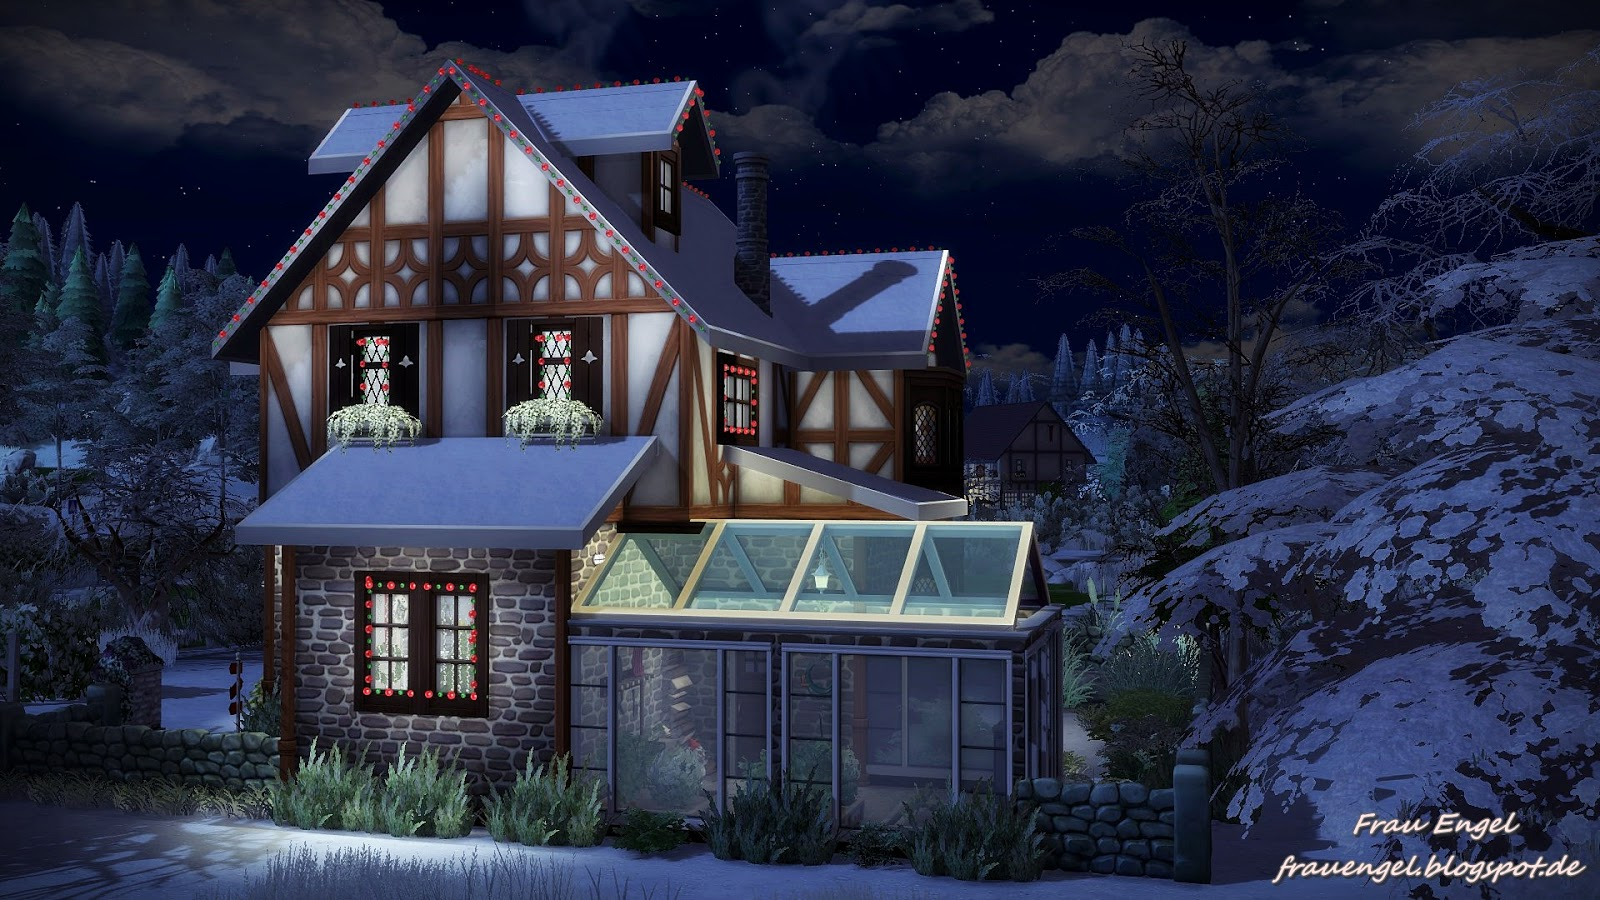 Frau Engel  Houses and Lots, Residential Lots : Tudor style house Happy New Year